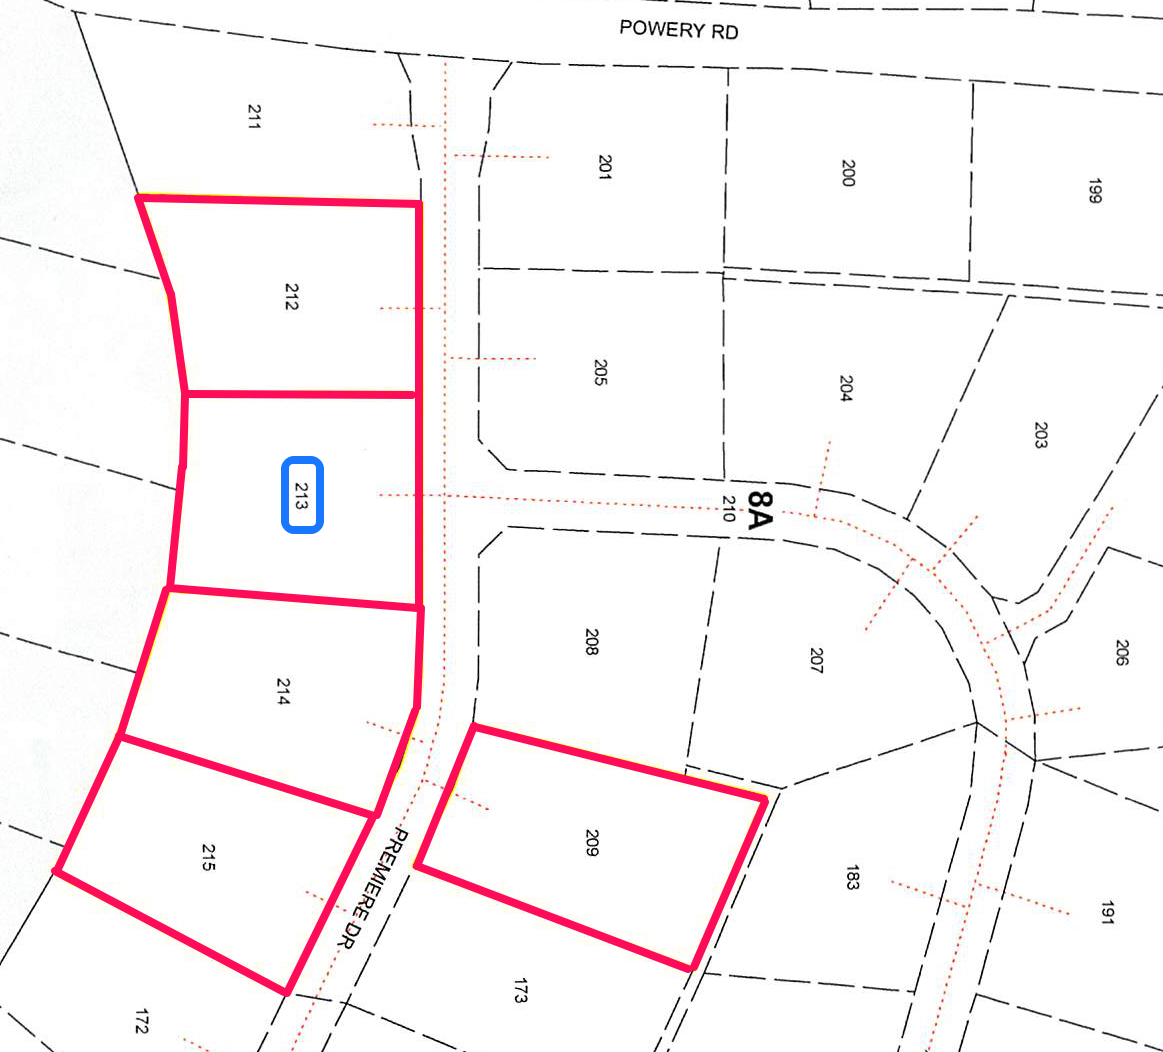 Introducing West Gate Subdivision Lot #213, Premiere Dr., Powery Rd, W. B.